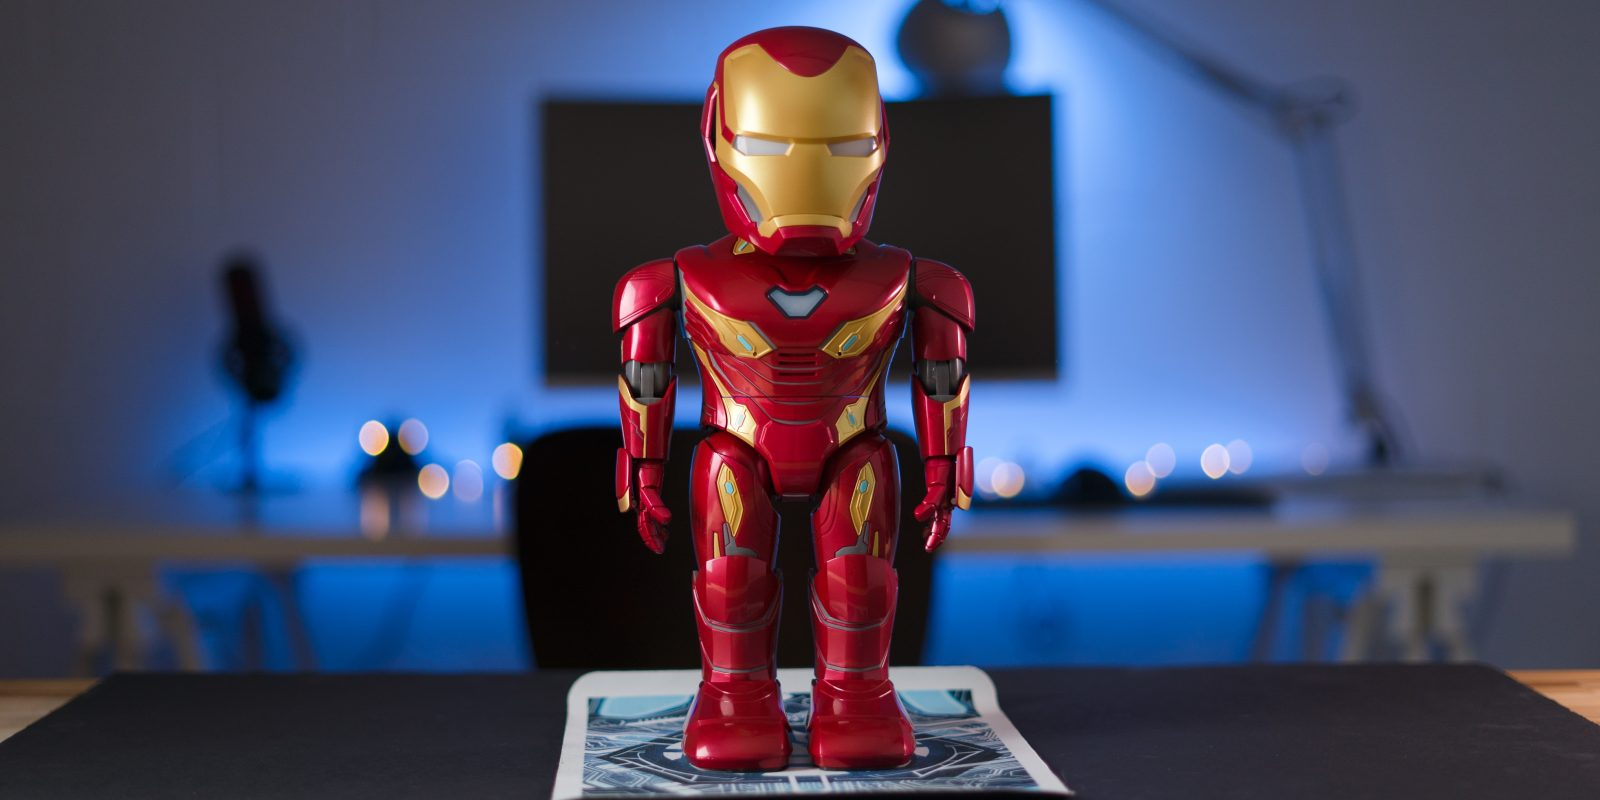 Bring home UBTECH's Marvel Iron Man Robot at up to $96 off, now down to $154 - 9to5Toys